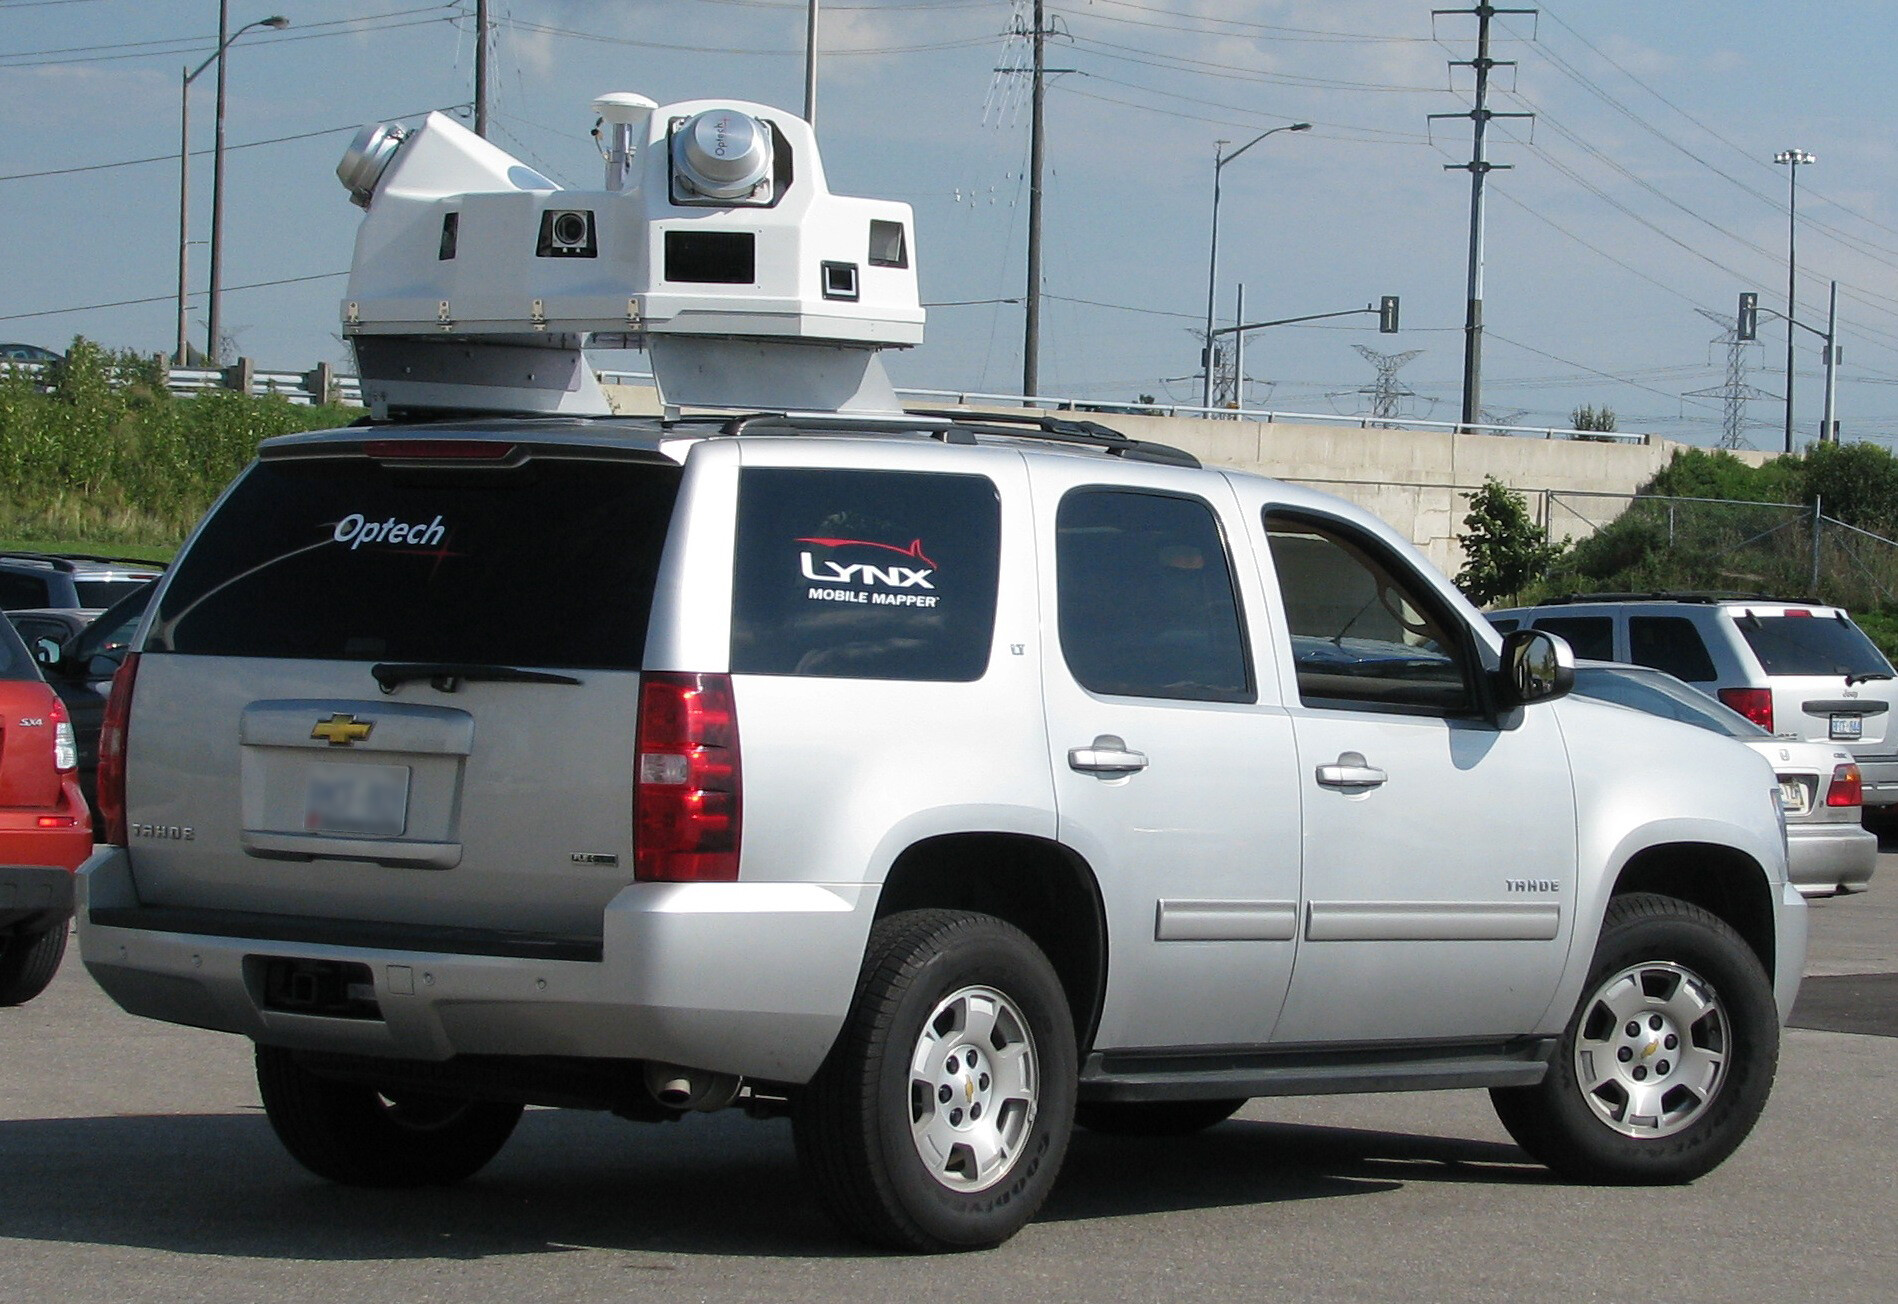 LIDAR on car